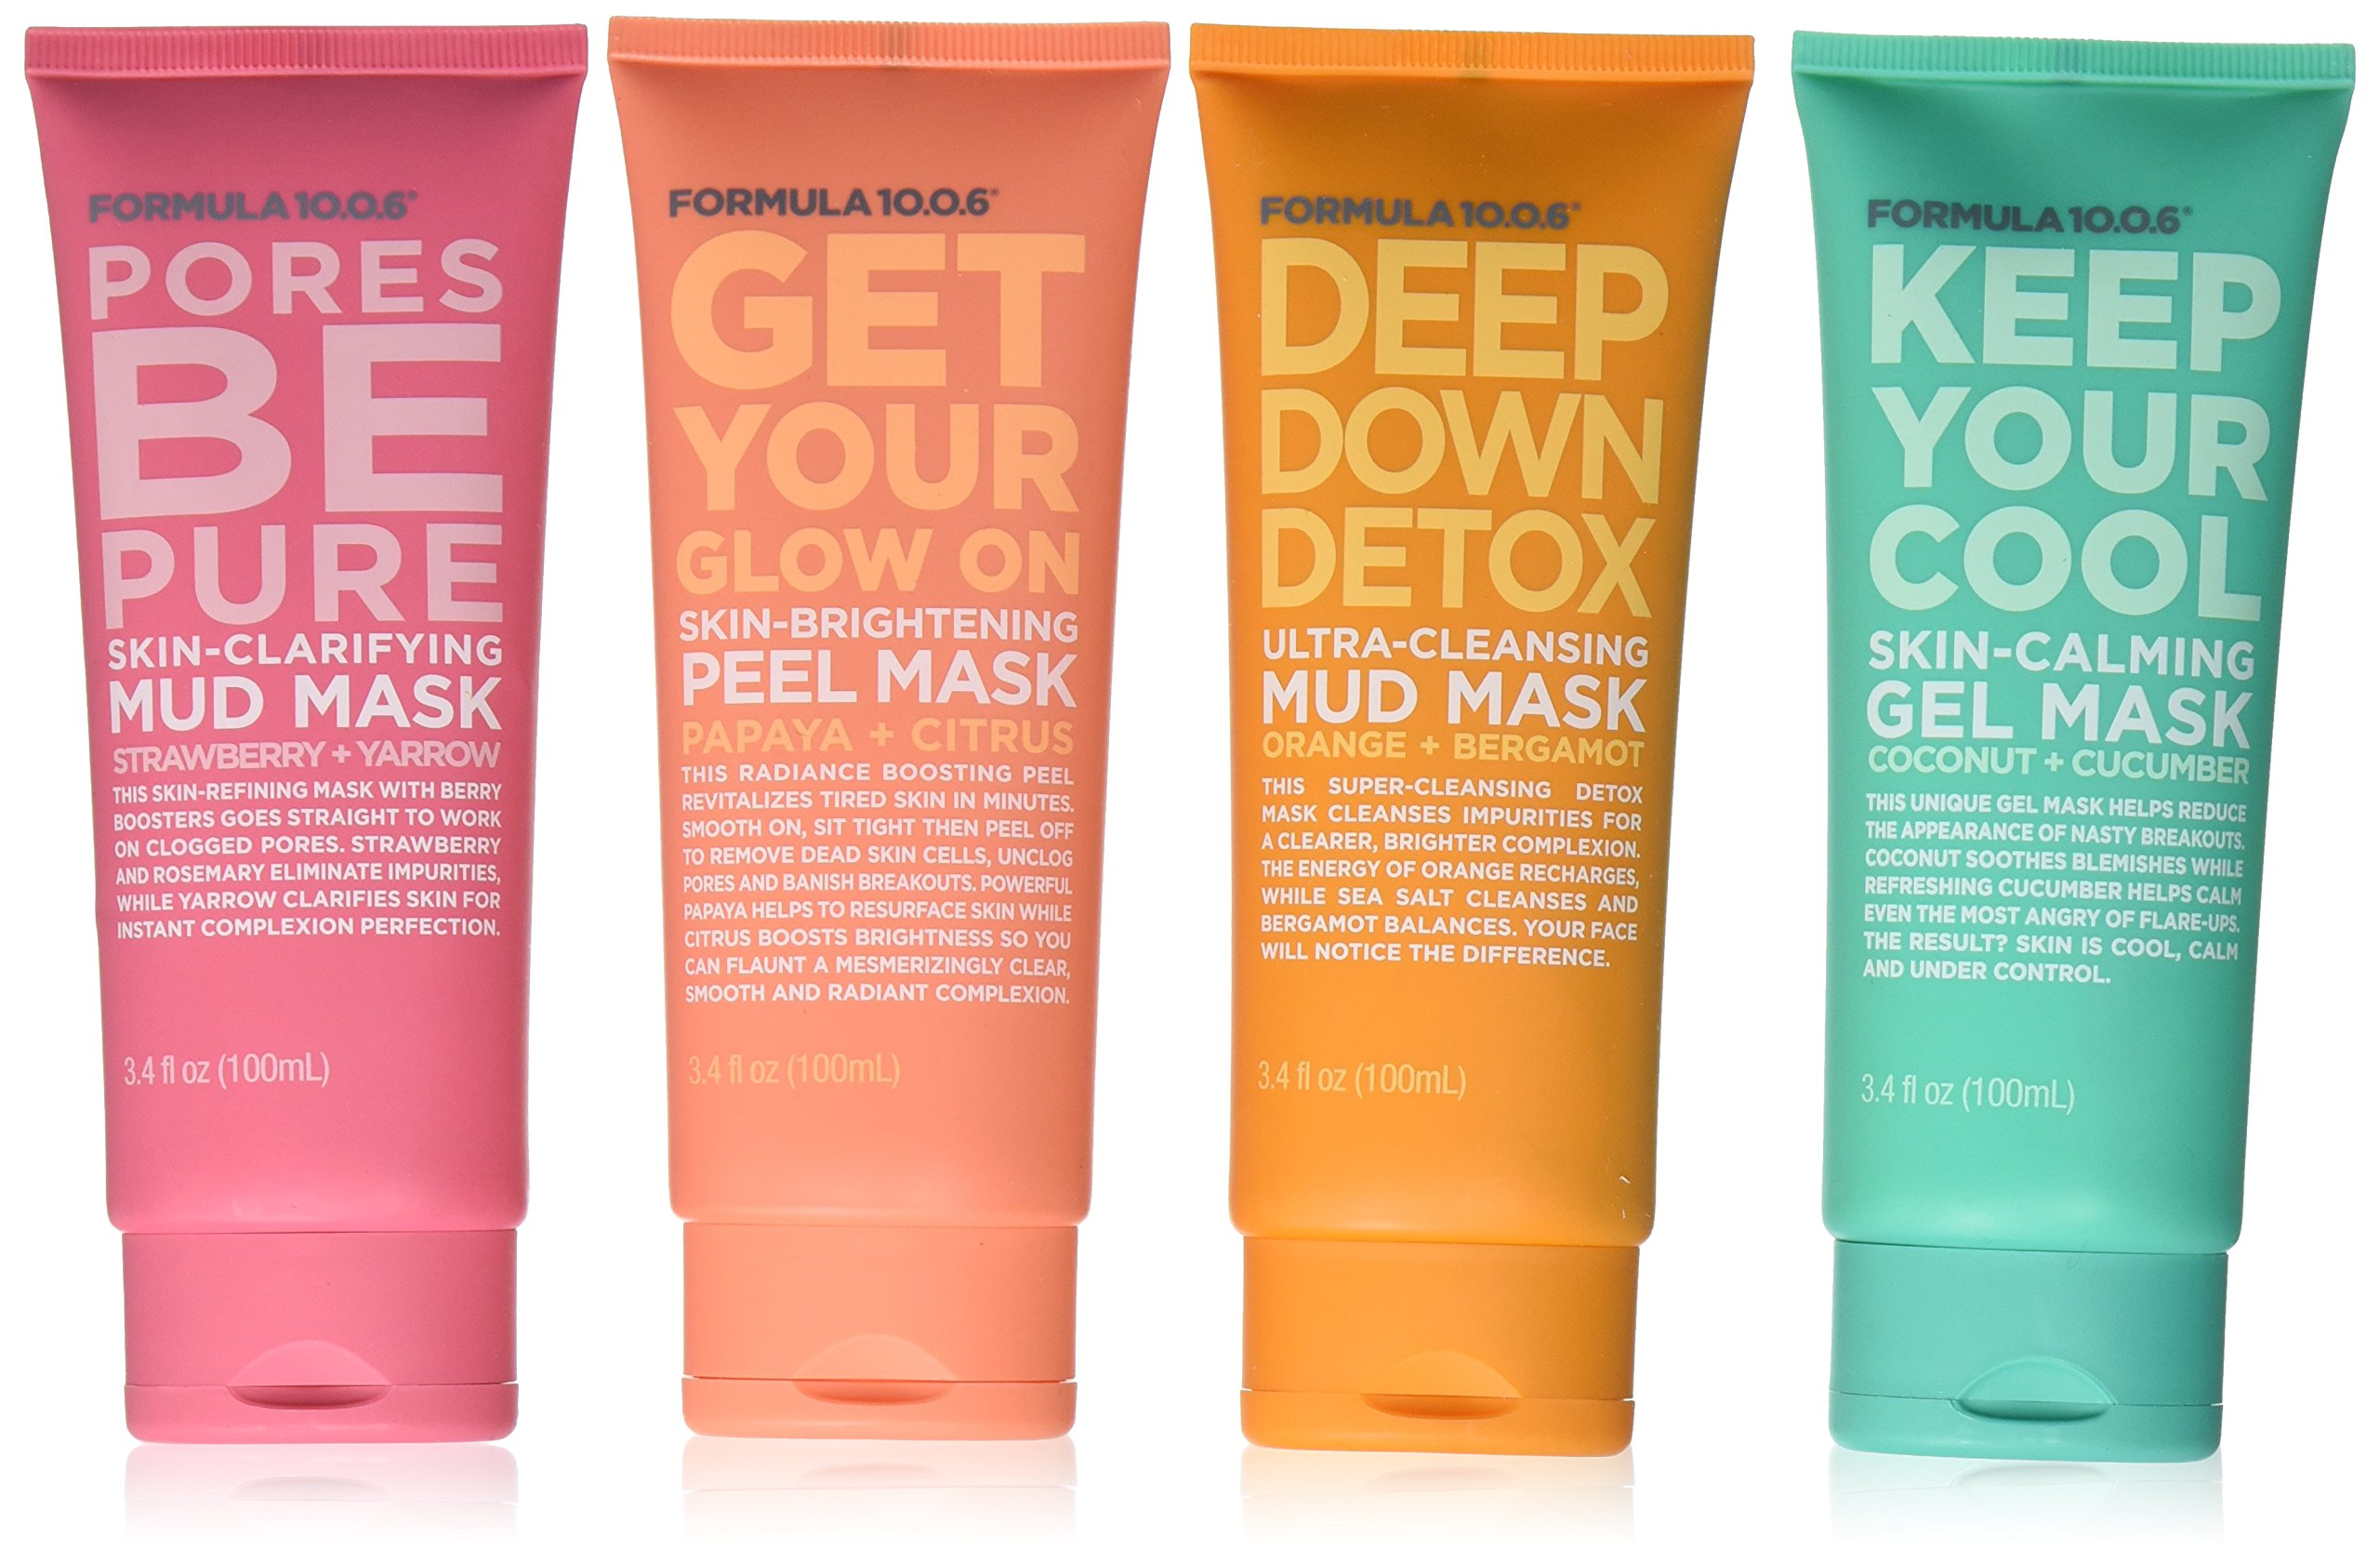 Pores be Pure Skin-Clarifying Facial Mud Mask - 3.4 oz. by Formula 10.0.6 (pack of 12) California Pure Naturals Organic Exfoliating Facial Cleanser, 4.0 Oz